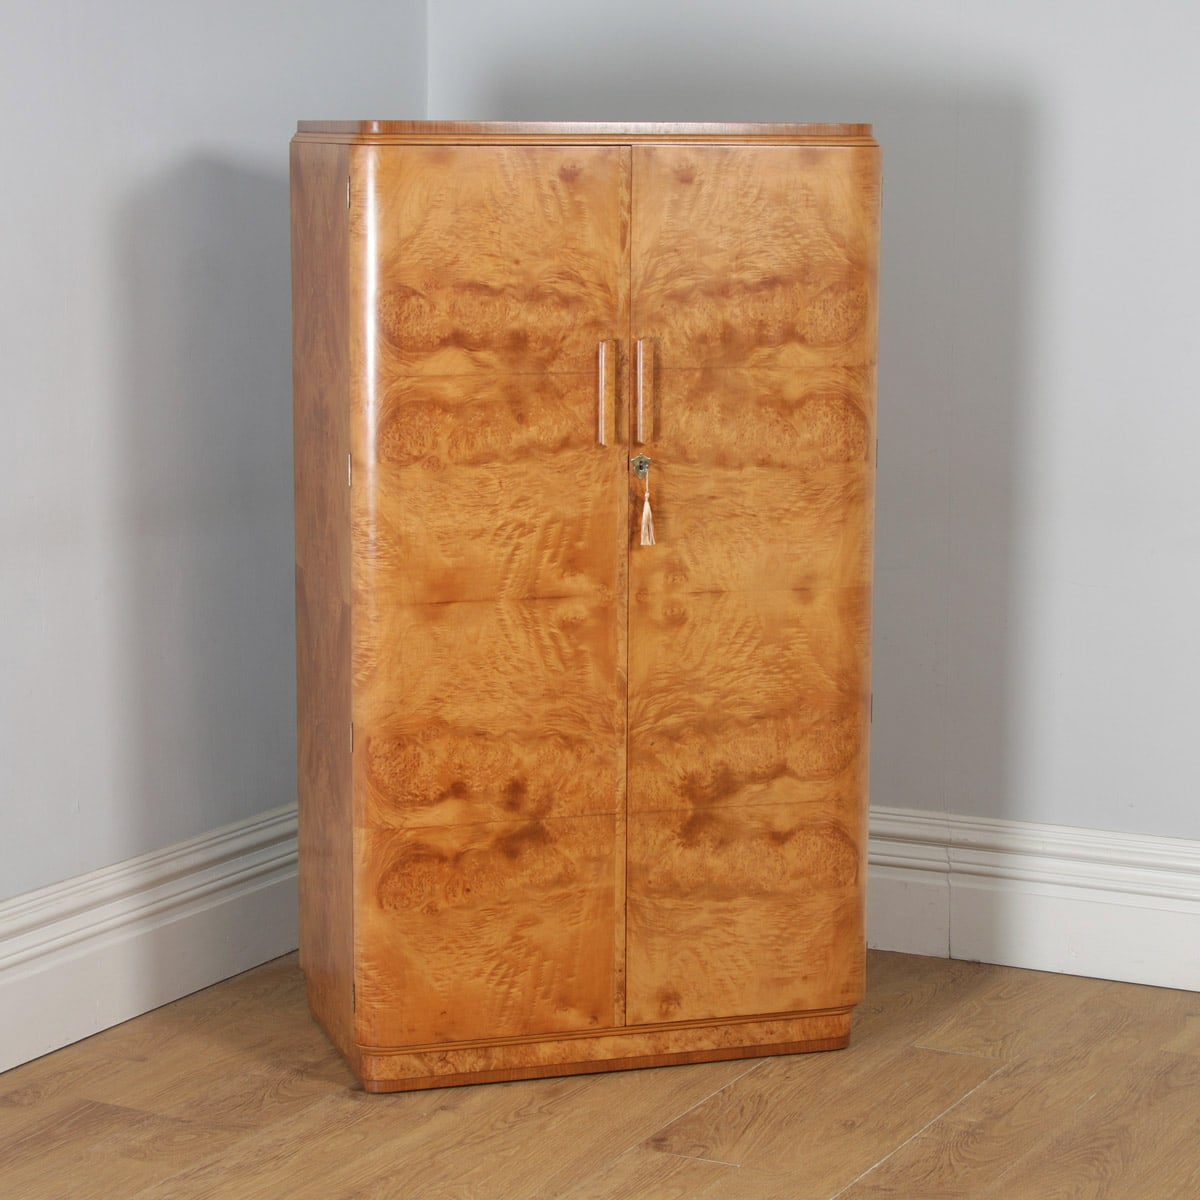 Edwardian Satinwood And Birdseye Maple Wardrobe Antique Furniture Edwardian (1901-1910)